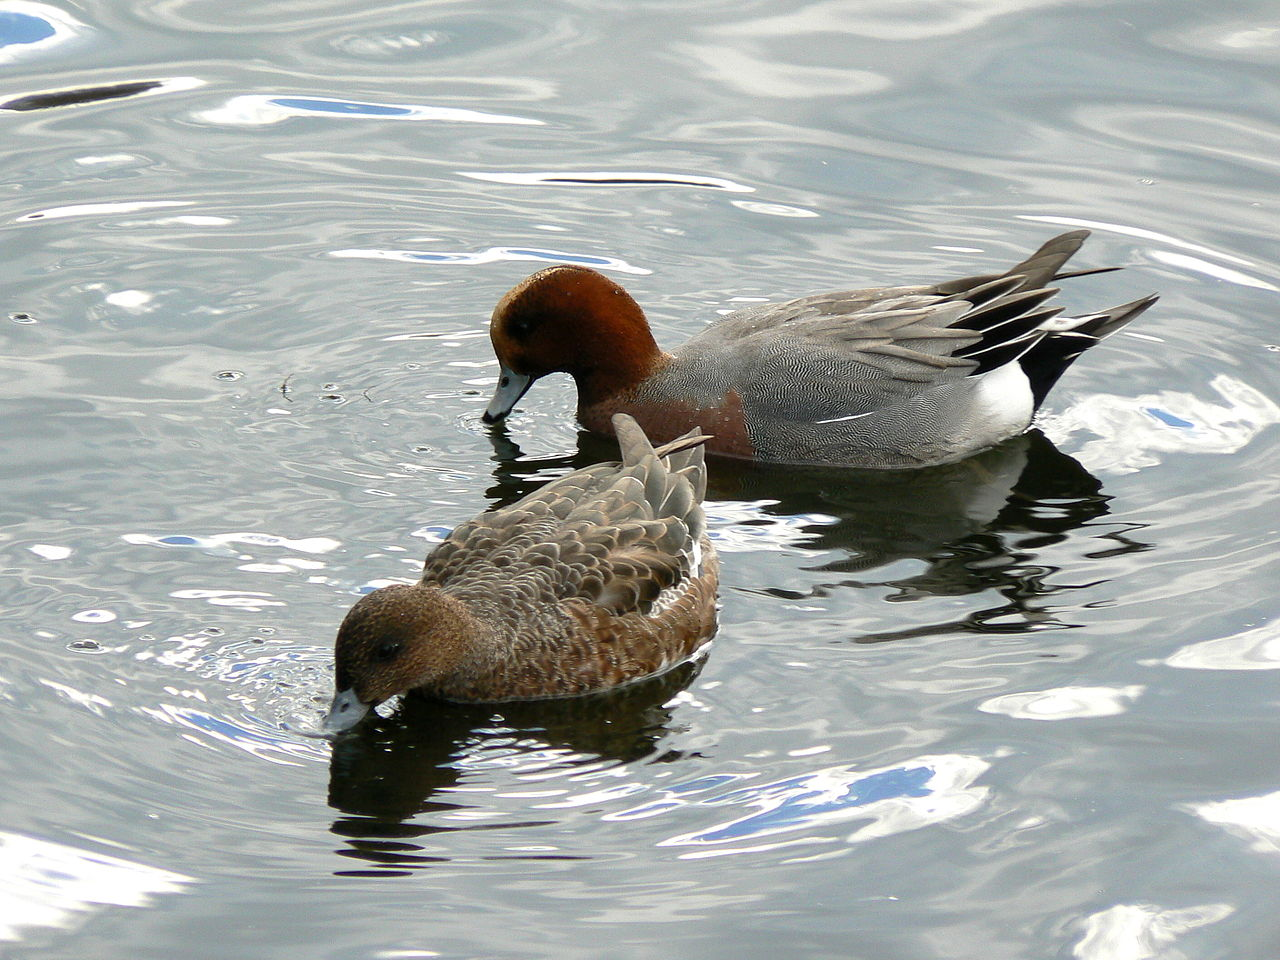 http://upload.wikimedia.org/wikipedia/commons/thumb/4/48/Wigeon.jpg/1280px-Wigeon.jpg